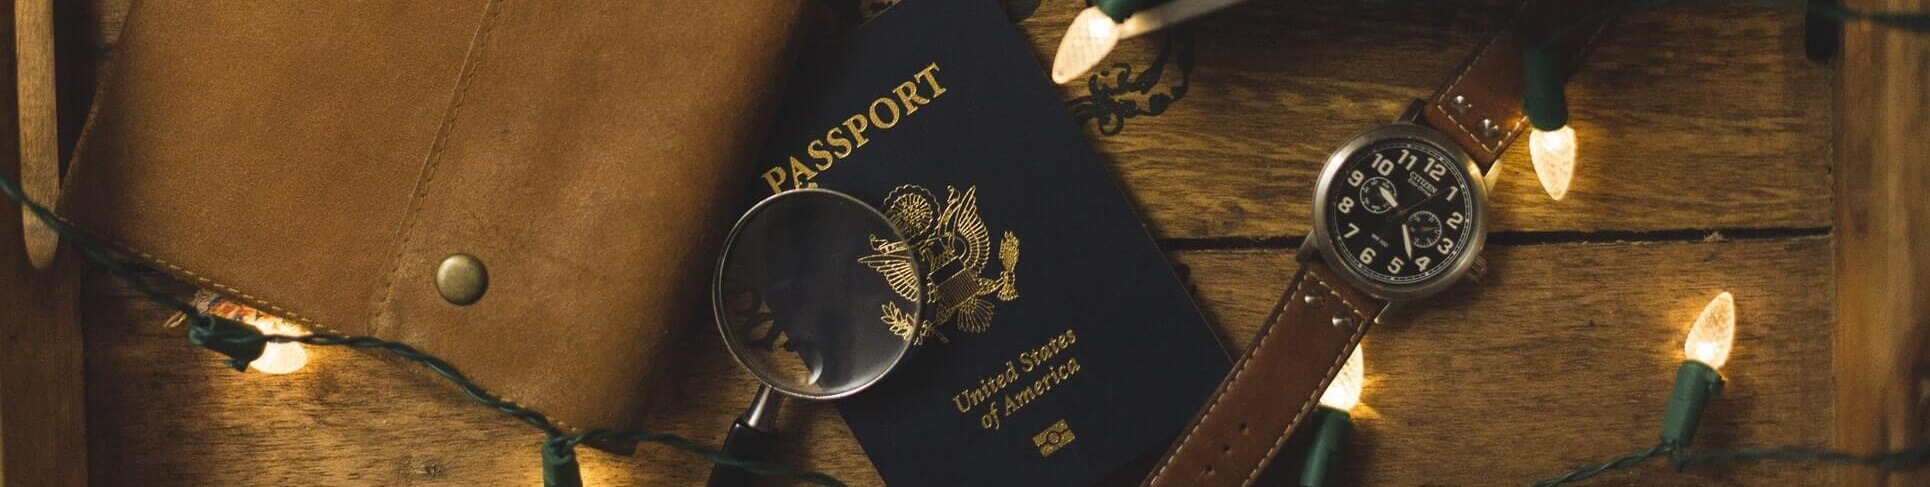 dual passport header